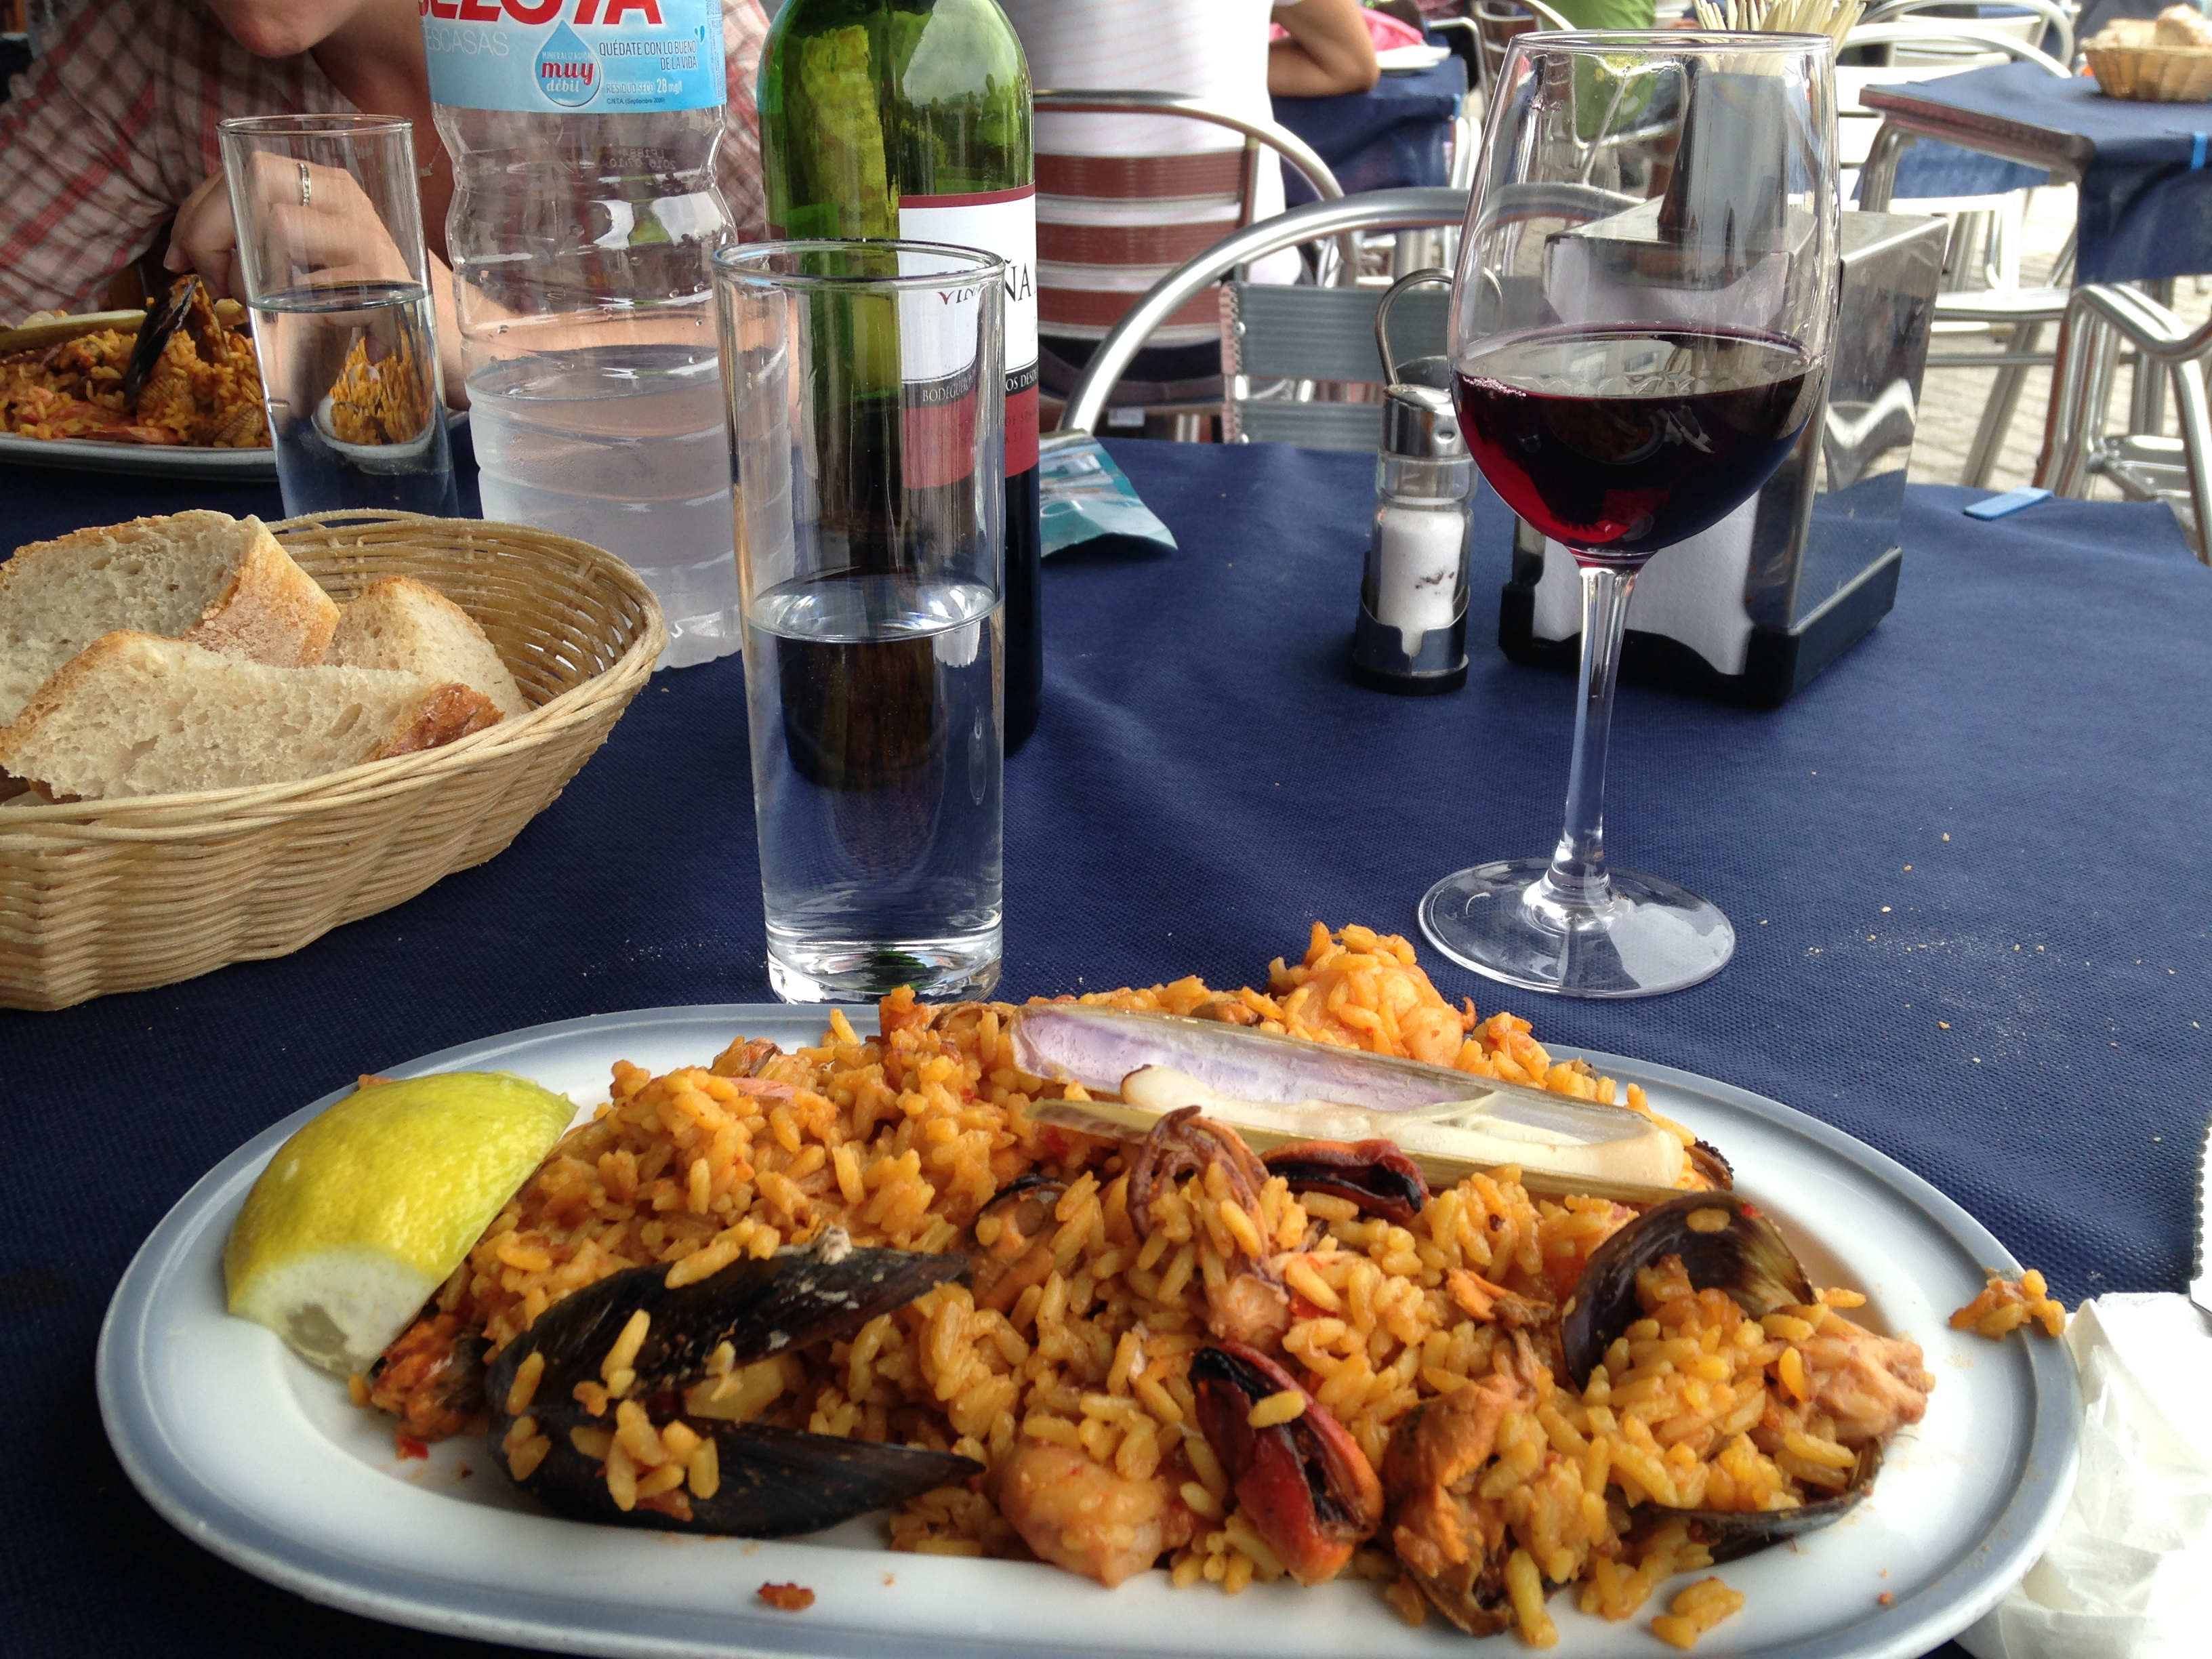 Paella lunch, Finisterre, Spain